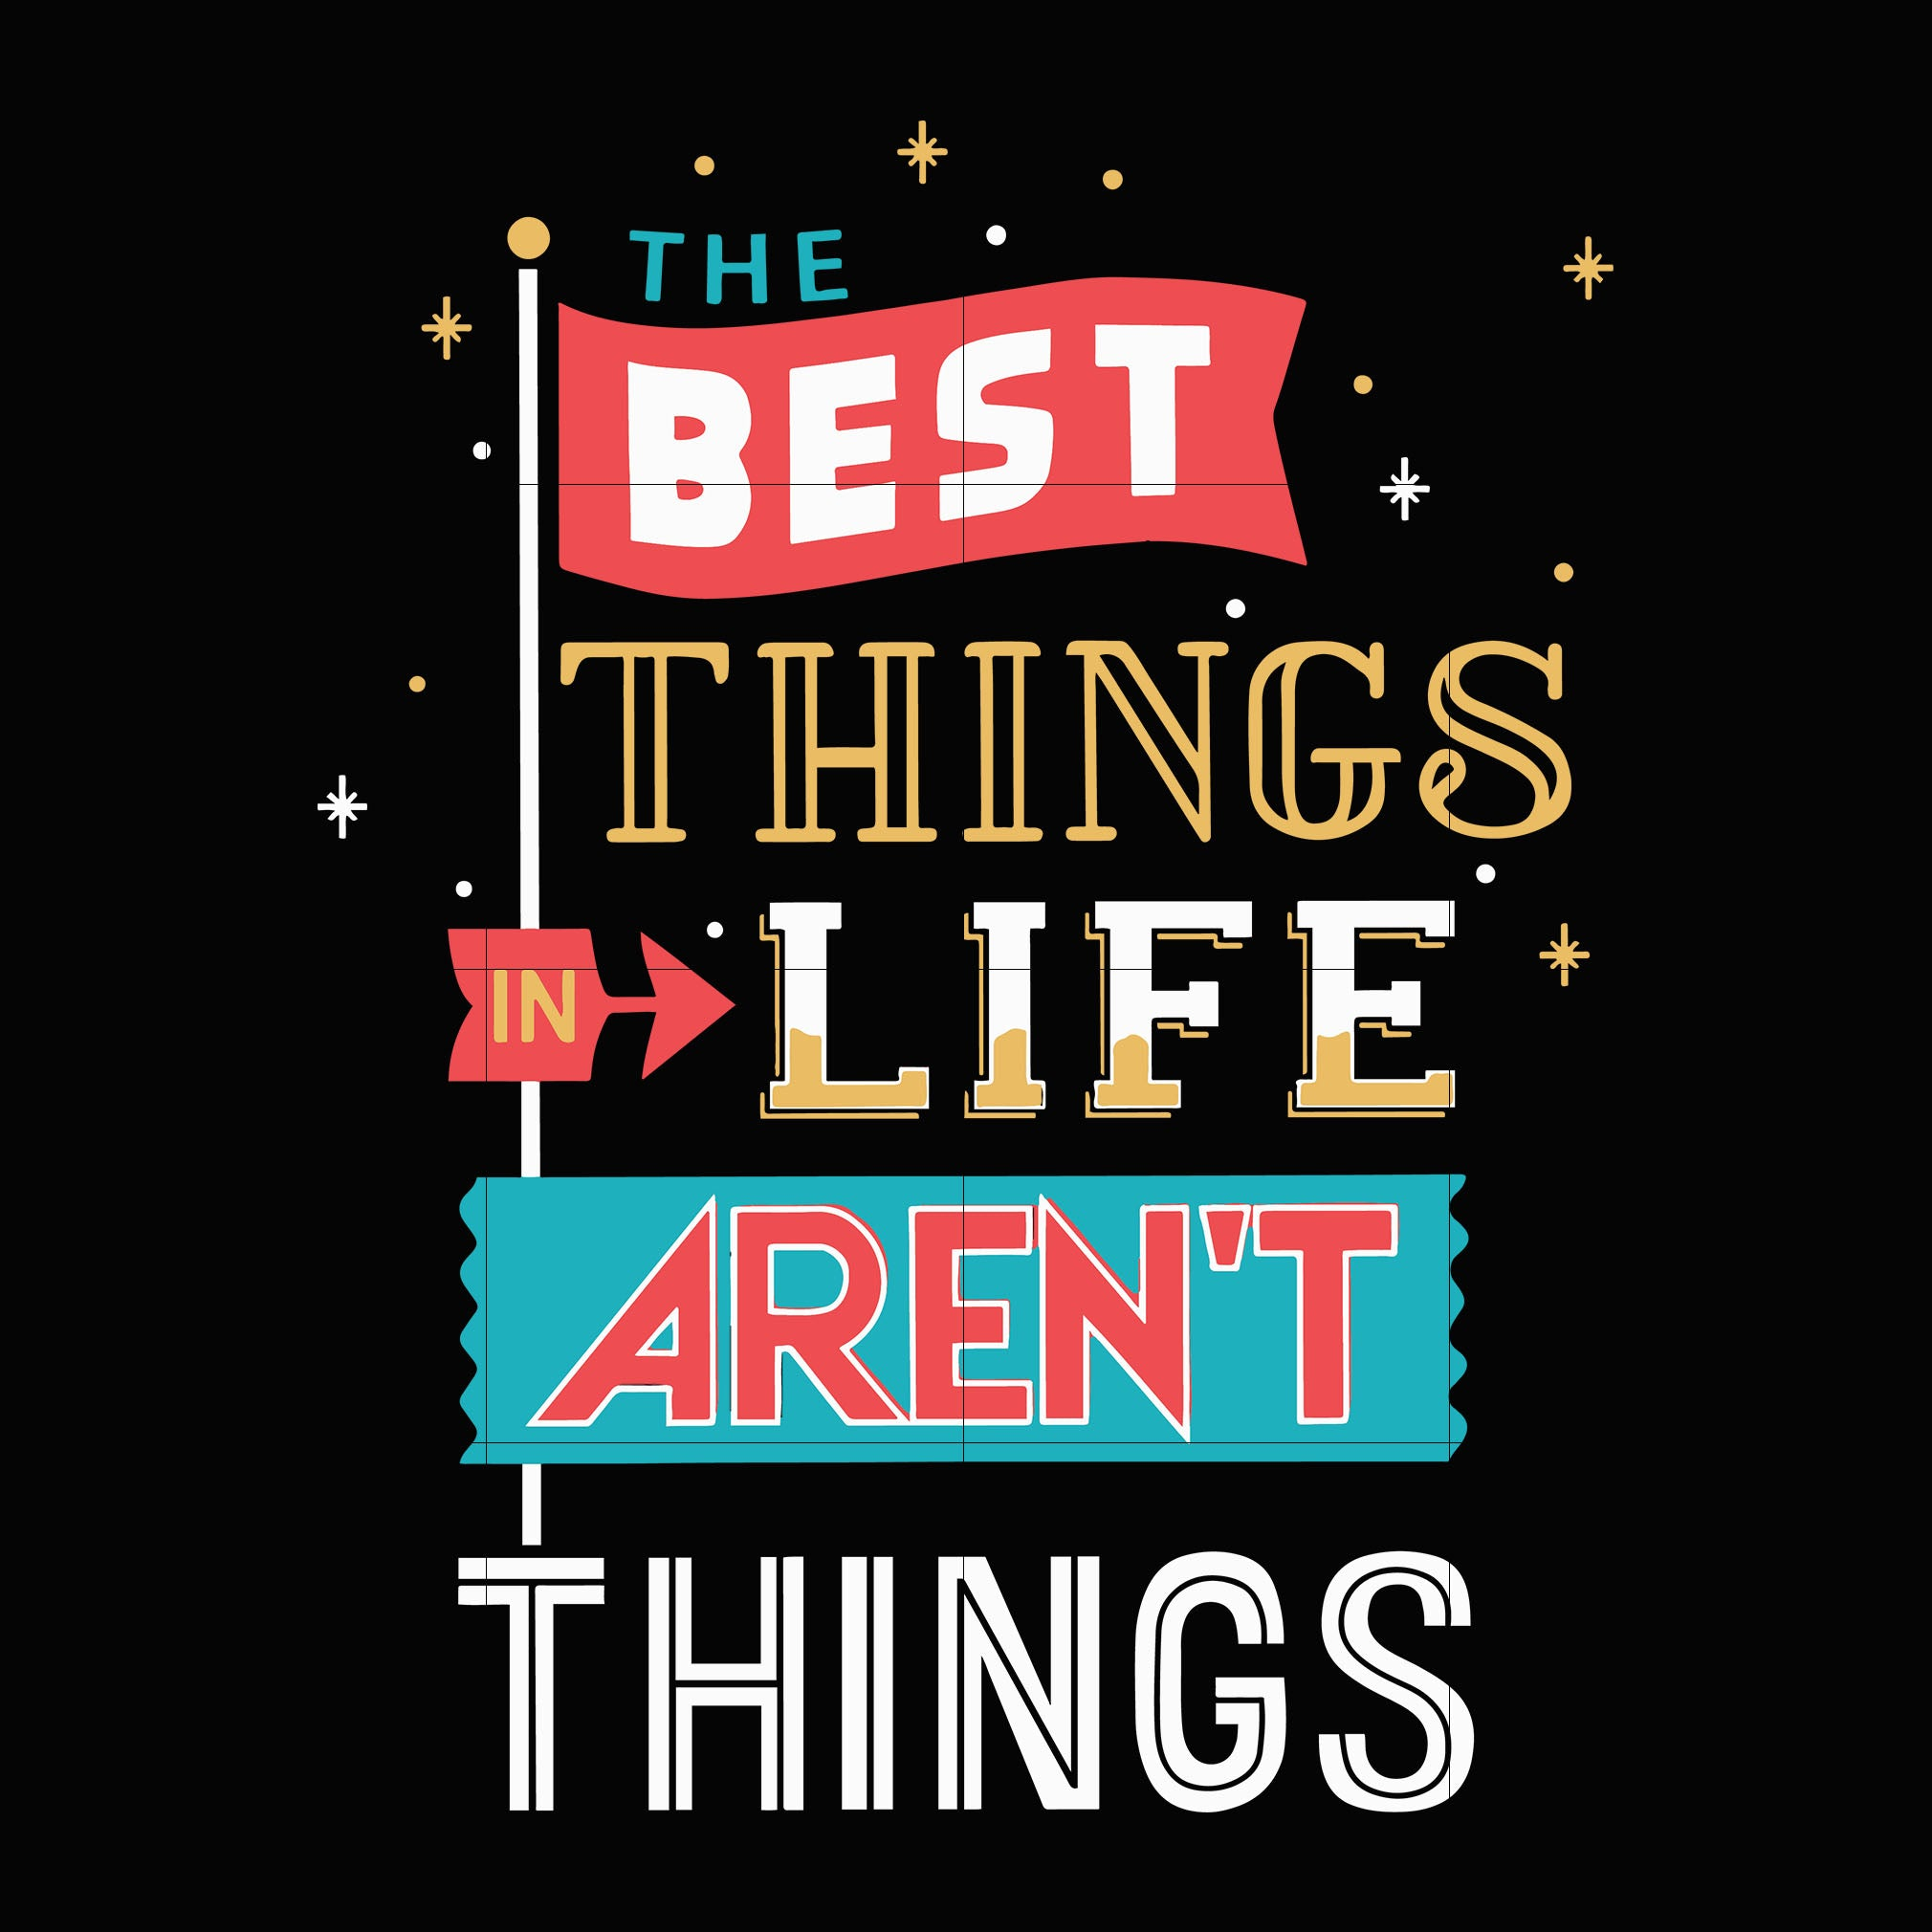 The best things life aren't things svg,dxf,eps,png digital file